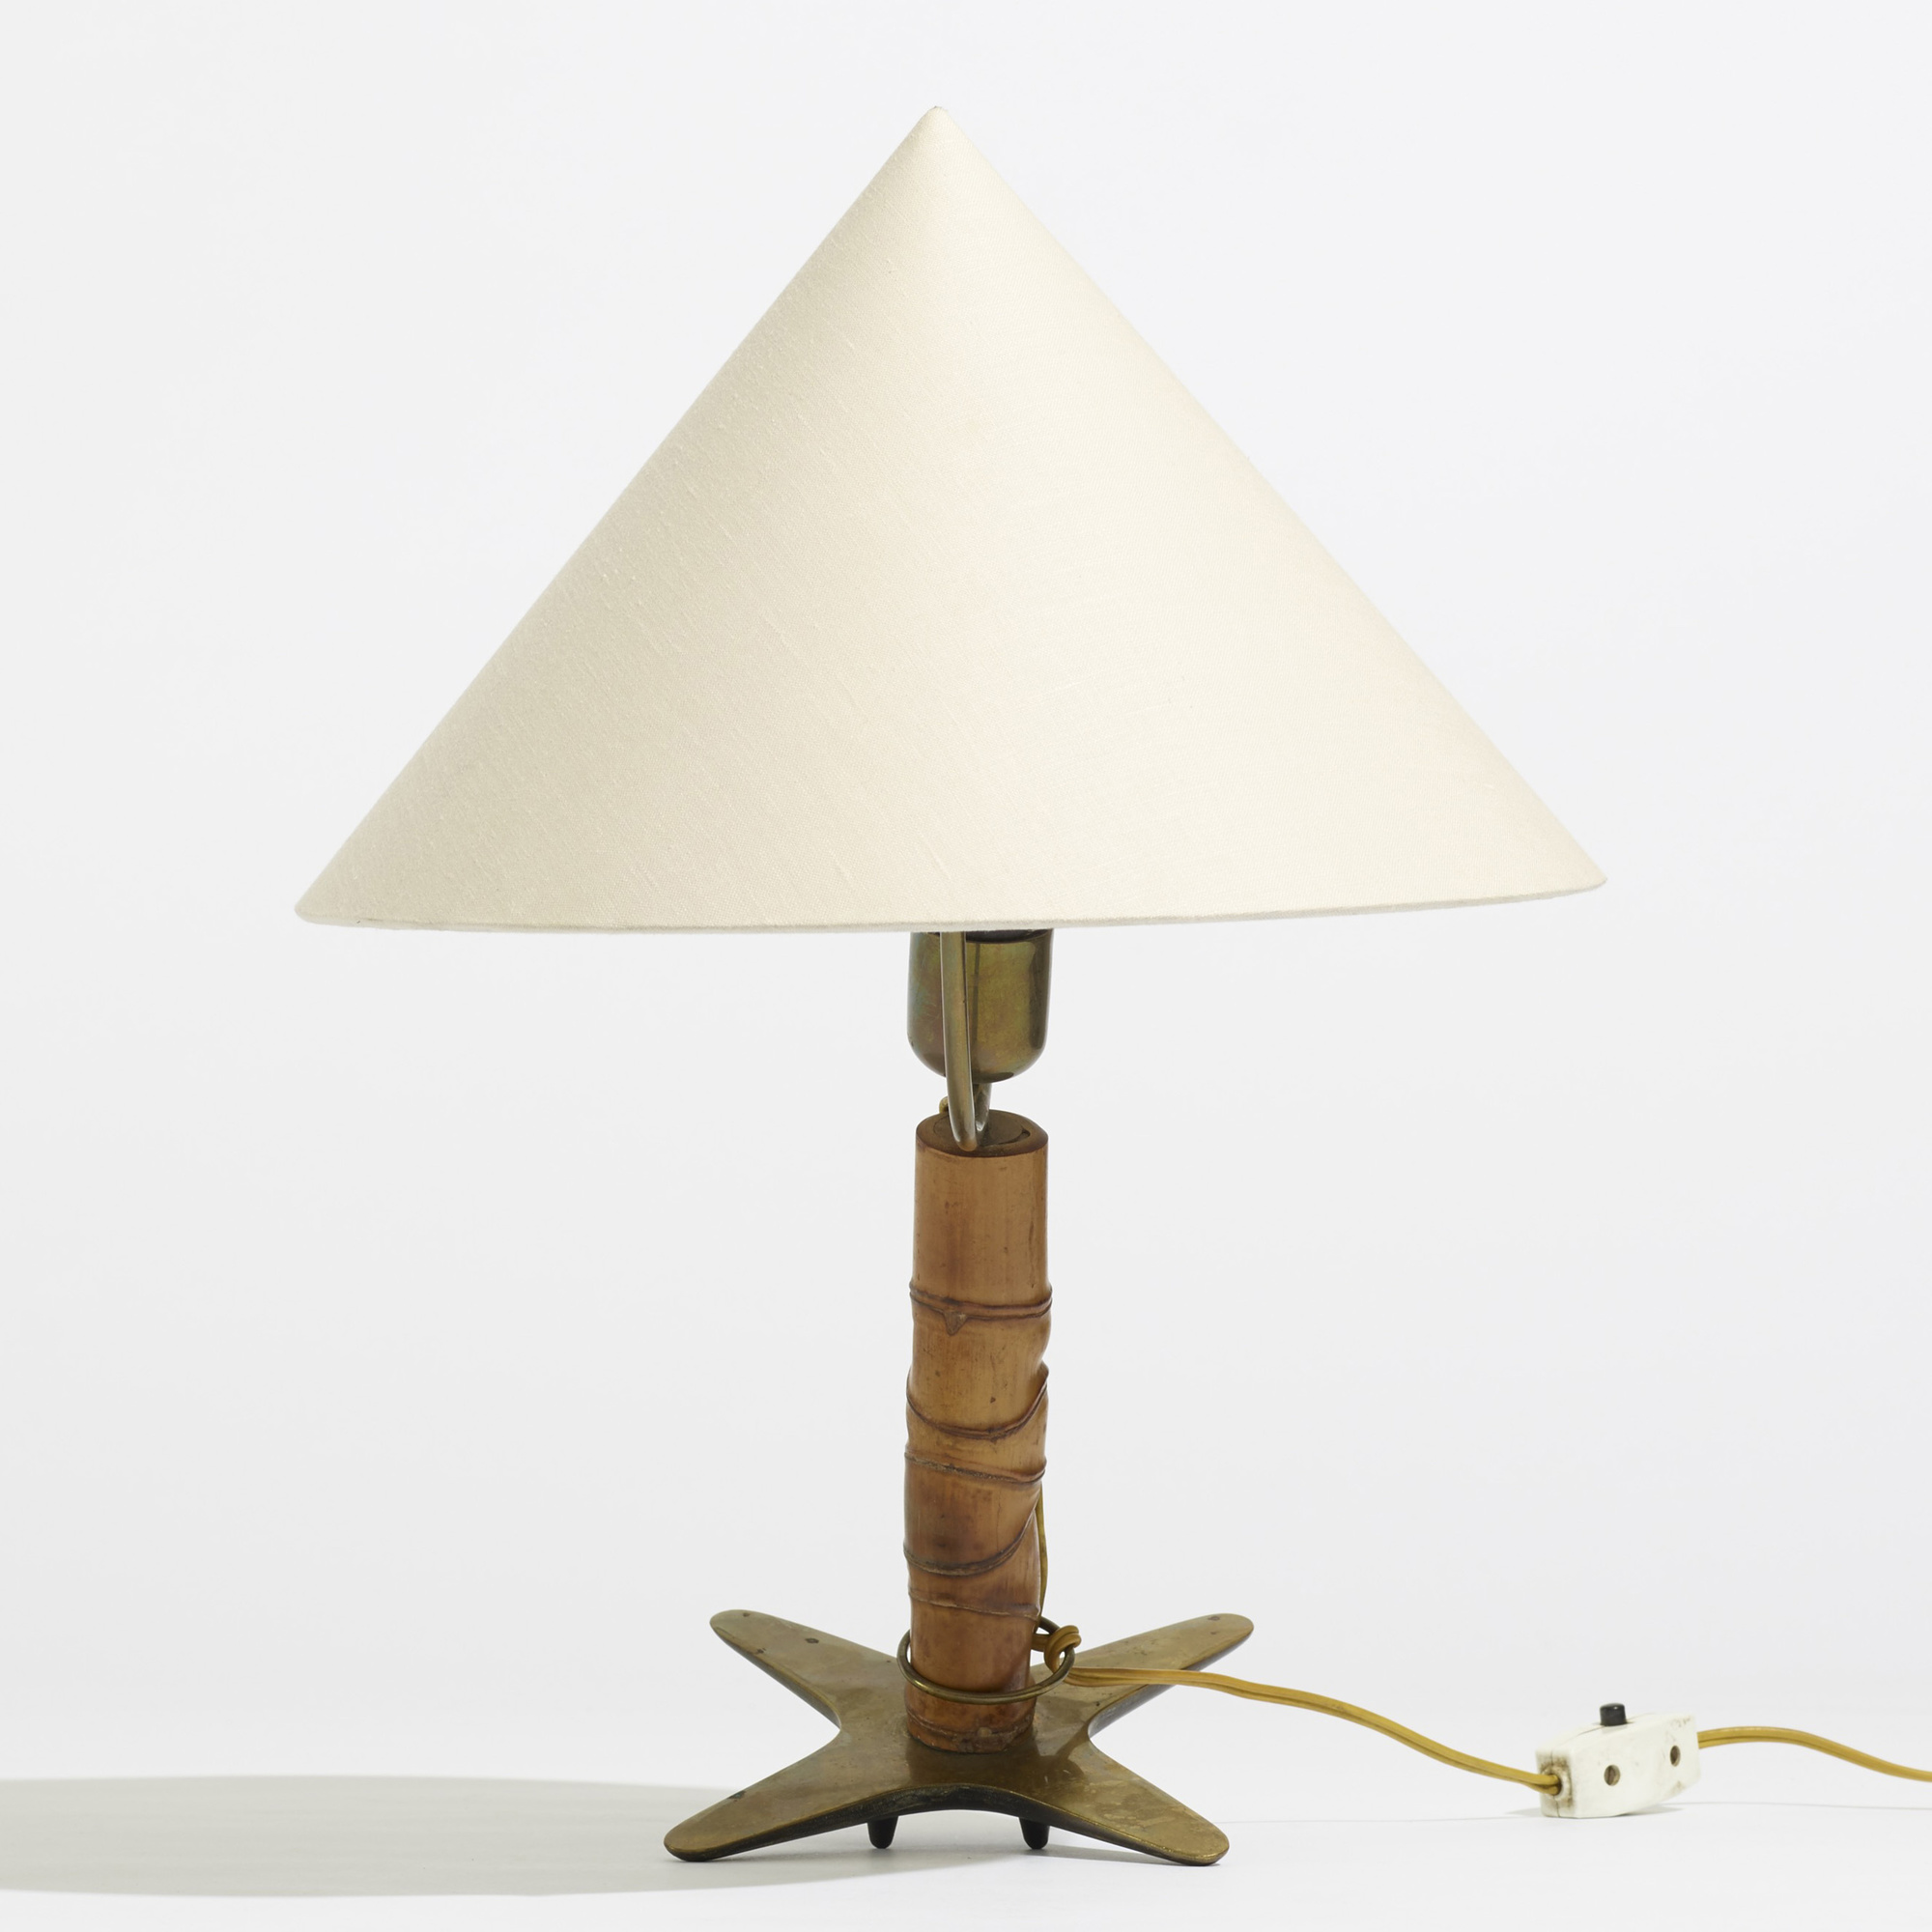 138: Carl Auböck II / table lamp (3 of 4)